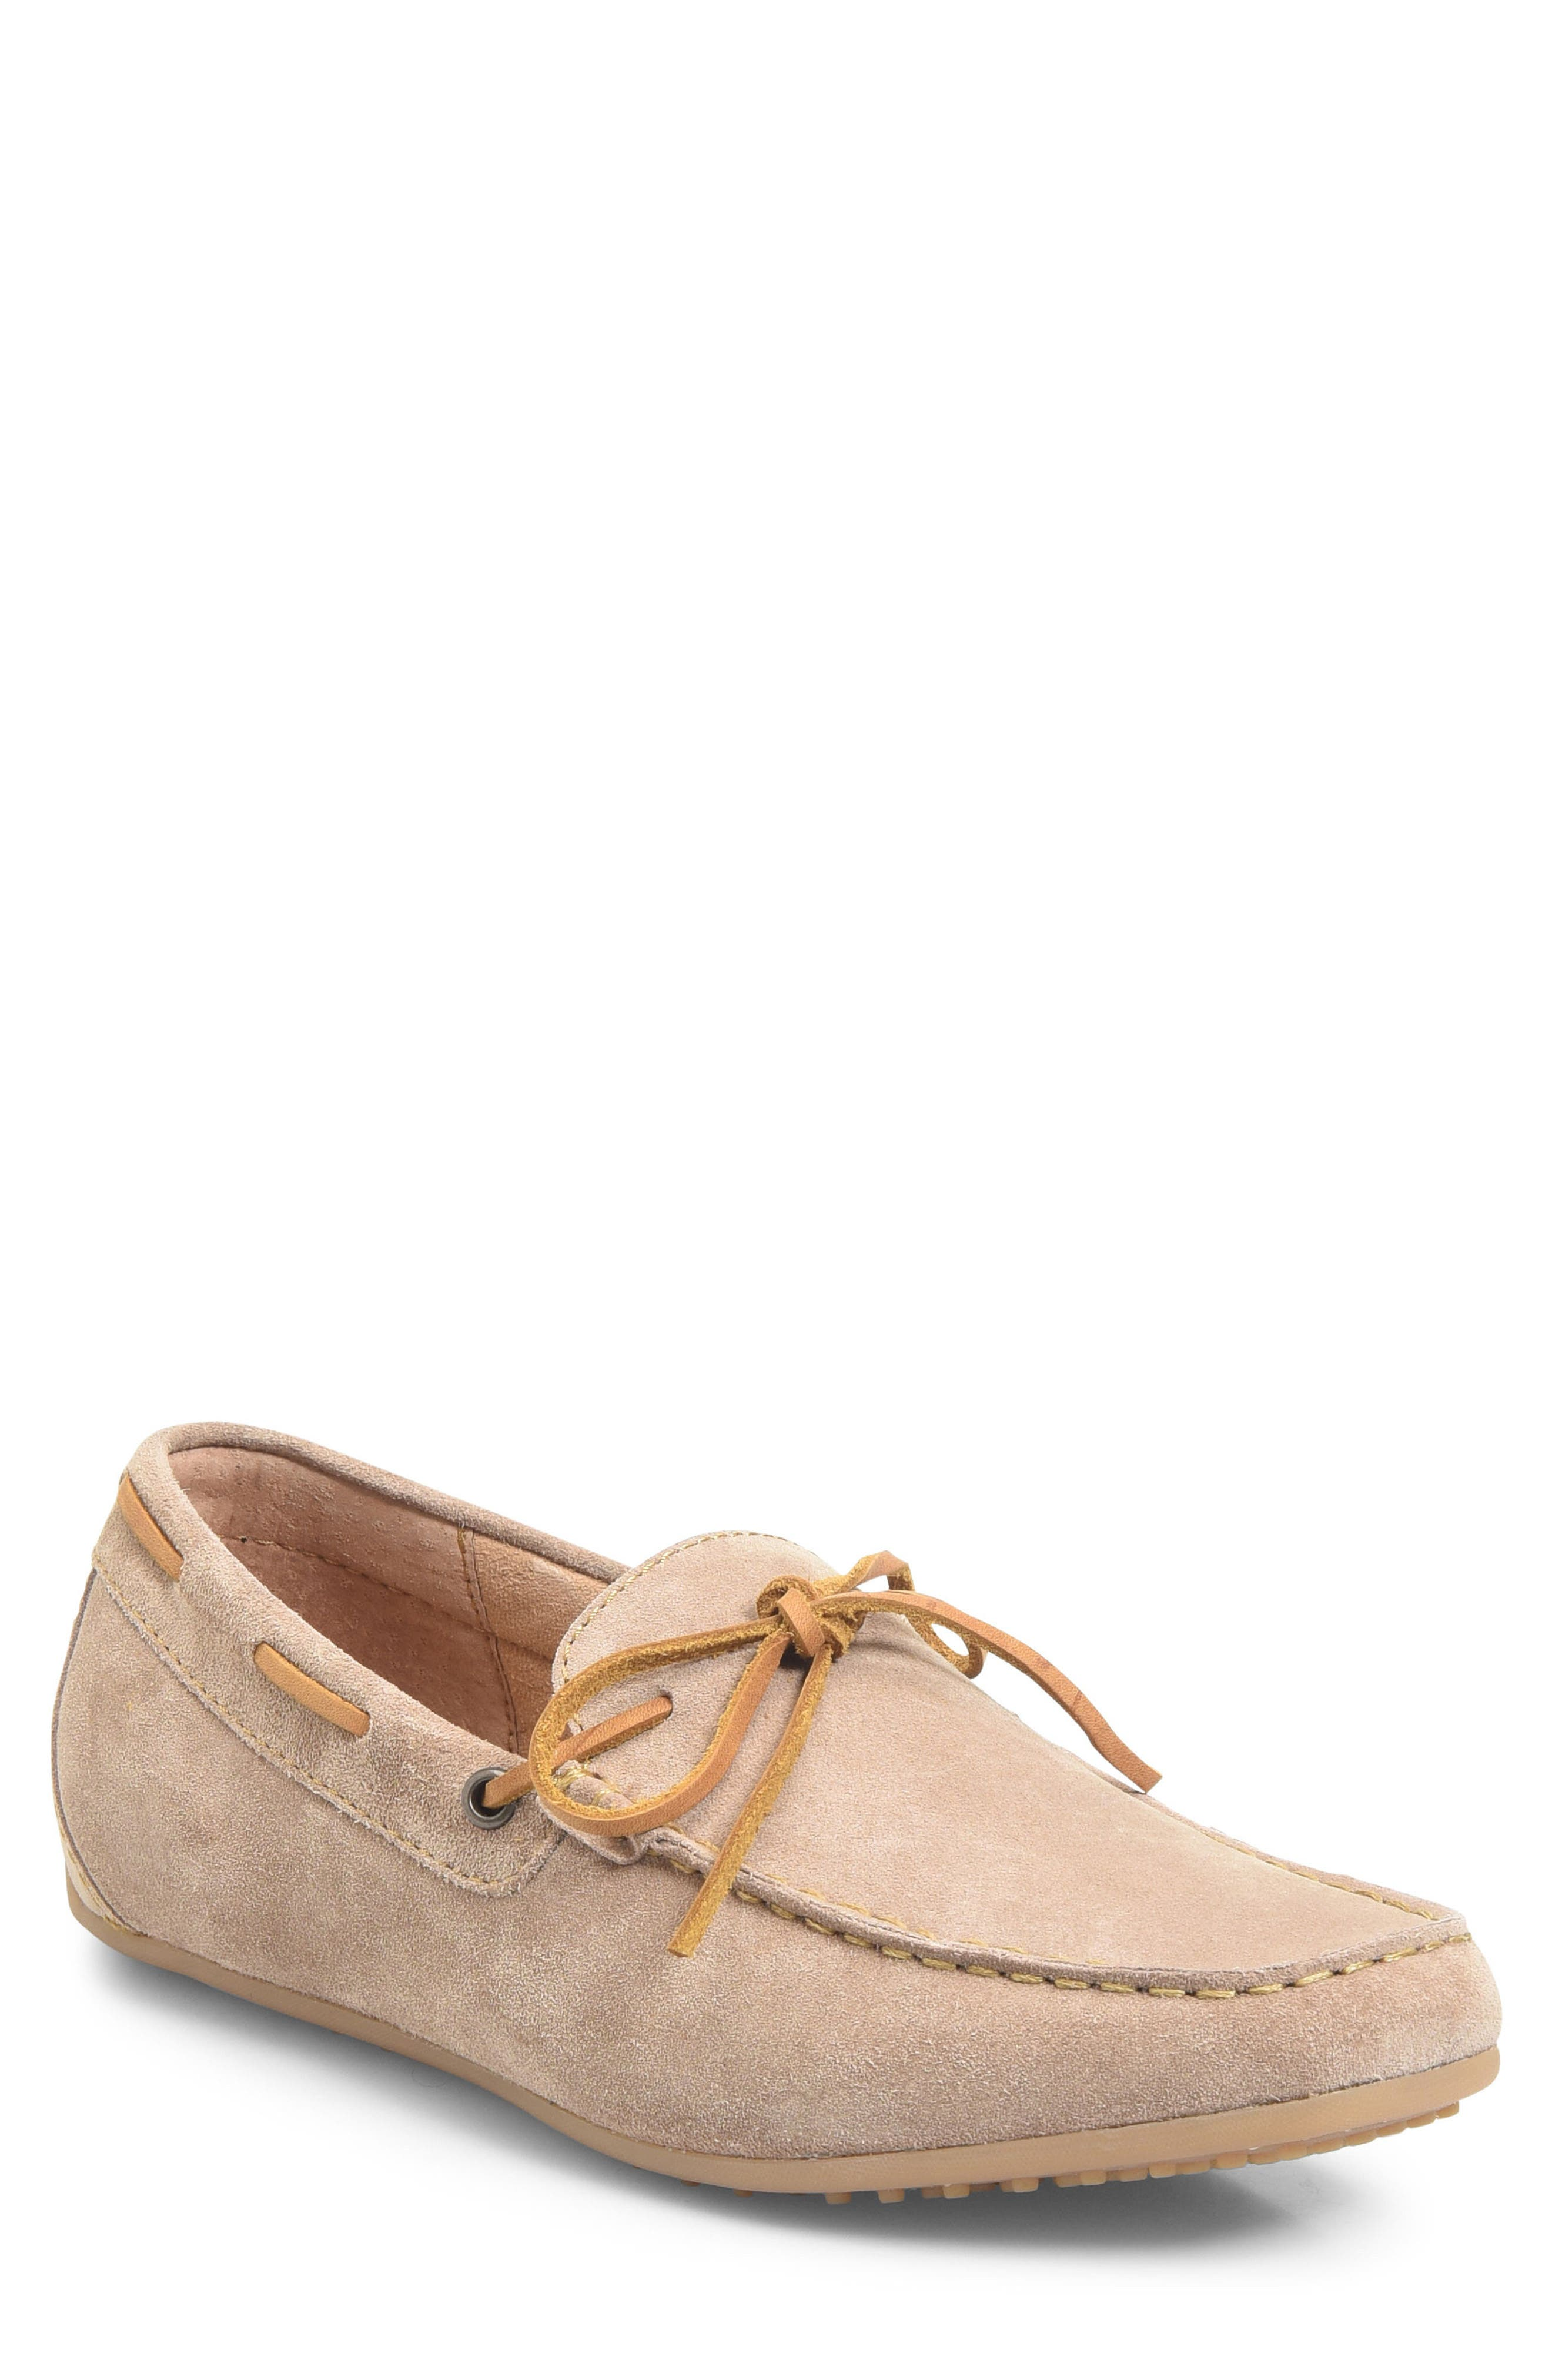 Virgo Driving Shoe,                         Main,                         color, Taupe Suede